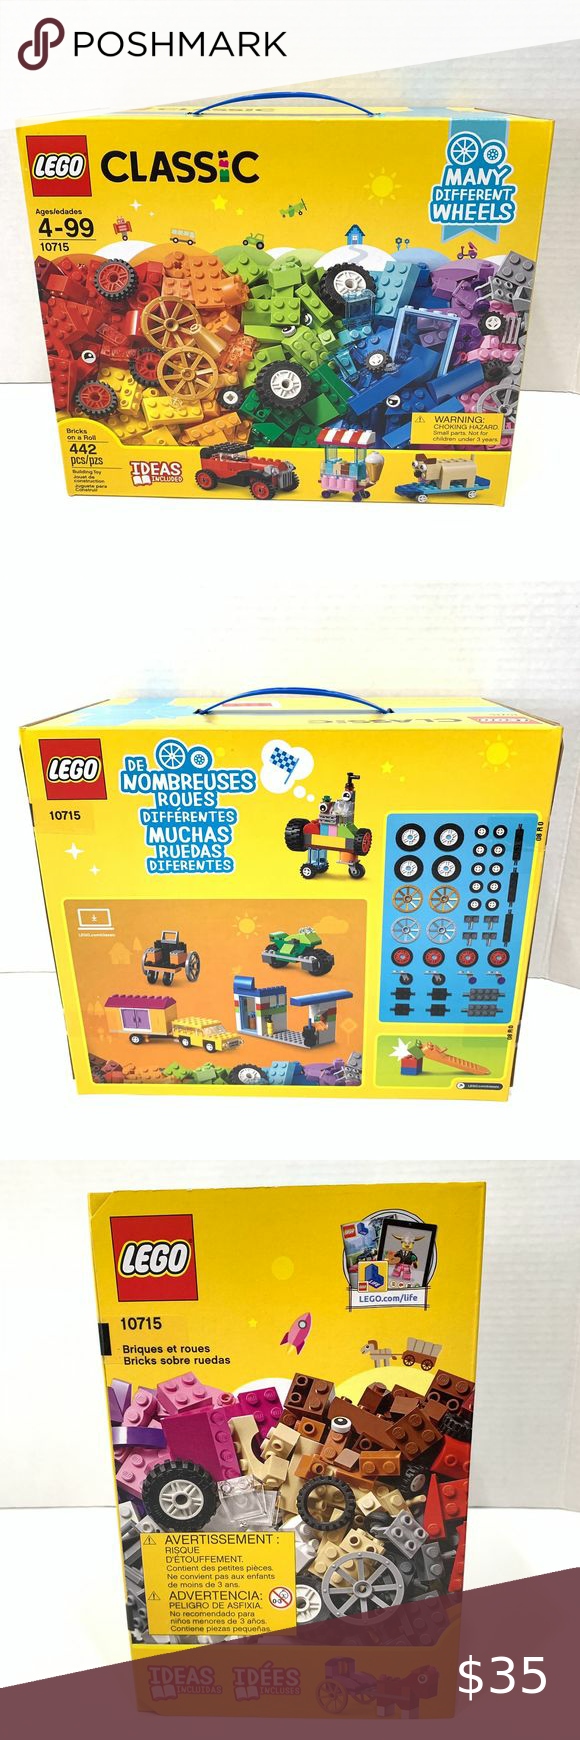 Great Gift Idea New LEGO Classic Bricks on a Roll 10715 442 Pieces